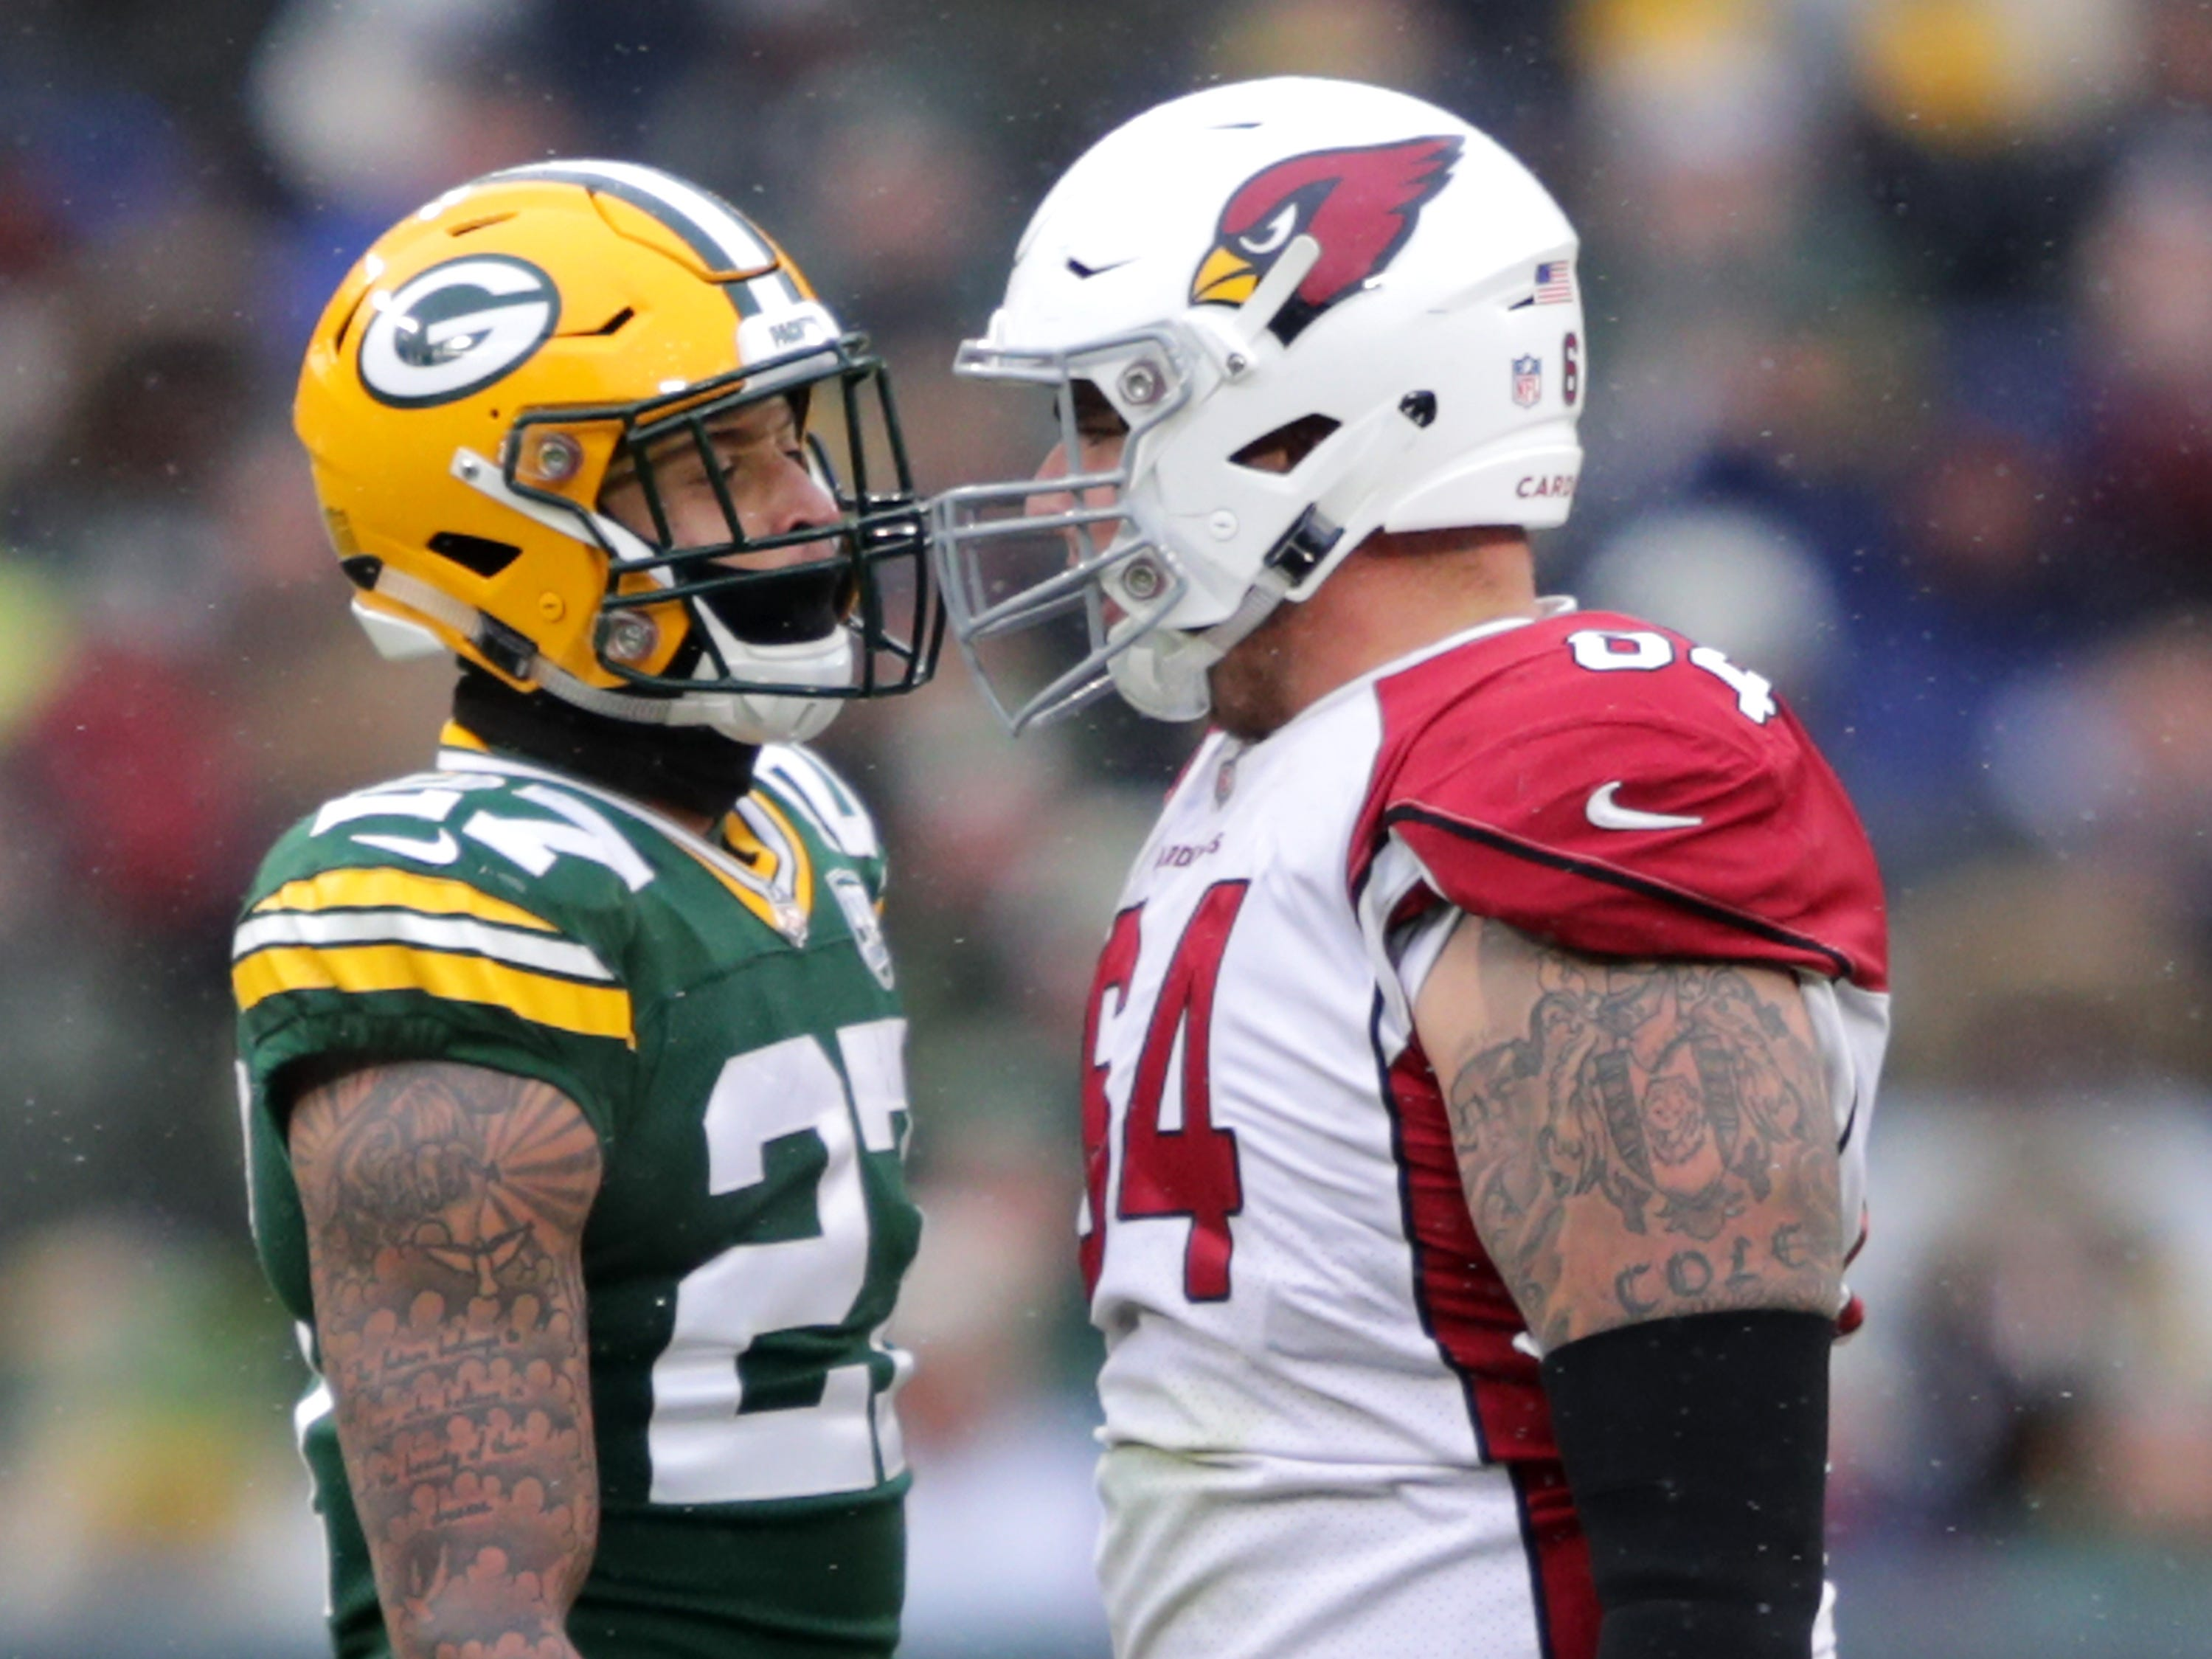 Green Bay Packers defensive back Josh Jones against Arizona Cardinals center Mason Cole during their football game on Sunday, December 2, 2018, at Lambeau Field in Green Bay, Wis. Arizona defeated Green Bay 20 to 17. Wm. Glasheen/USA TODAY NETWORK-Wisconsin.